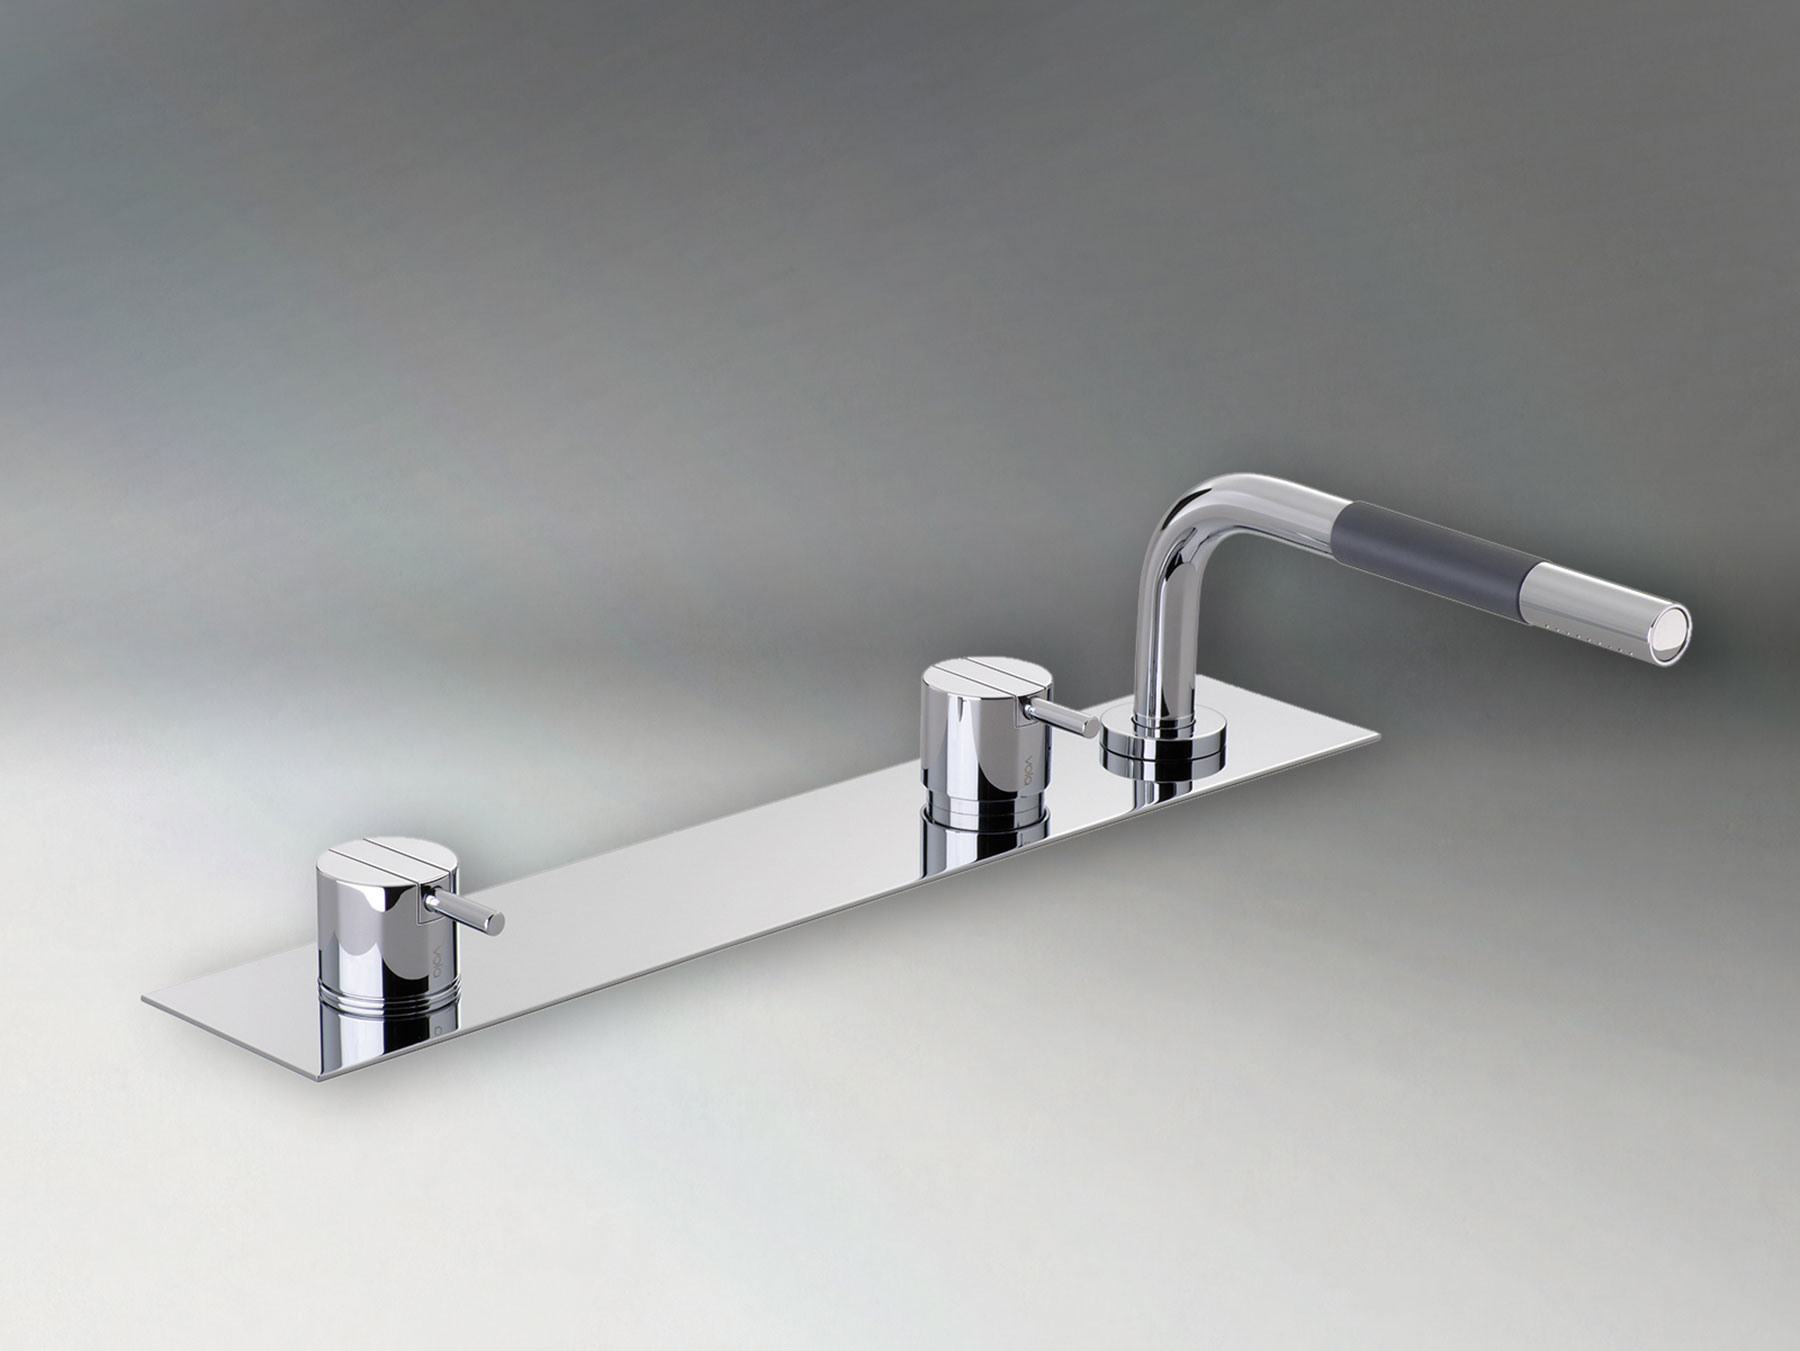 Transitional Vola Deck Mount Tub Mixer